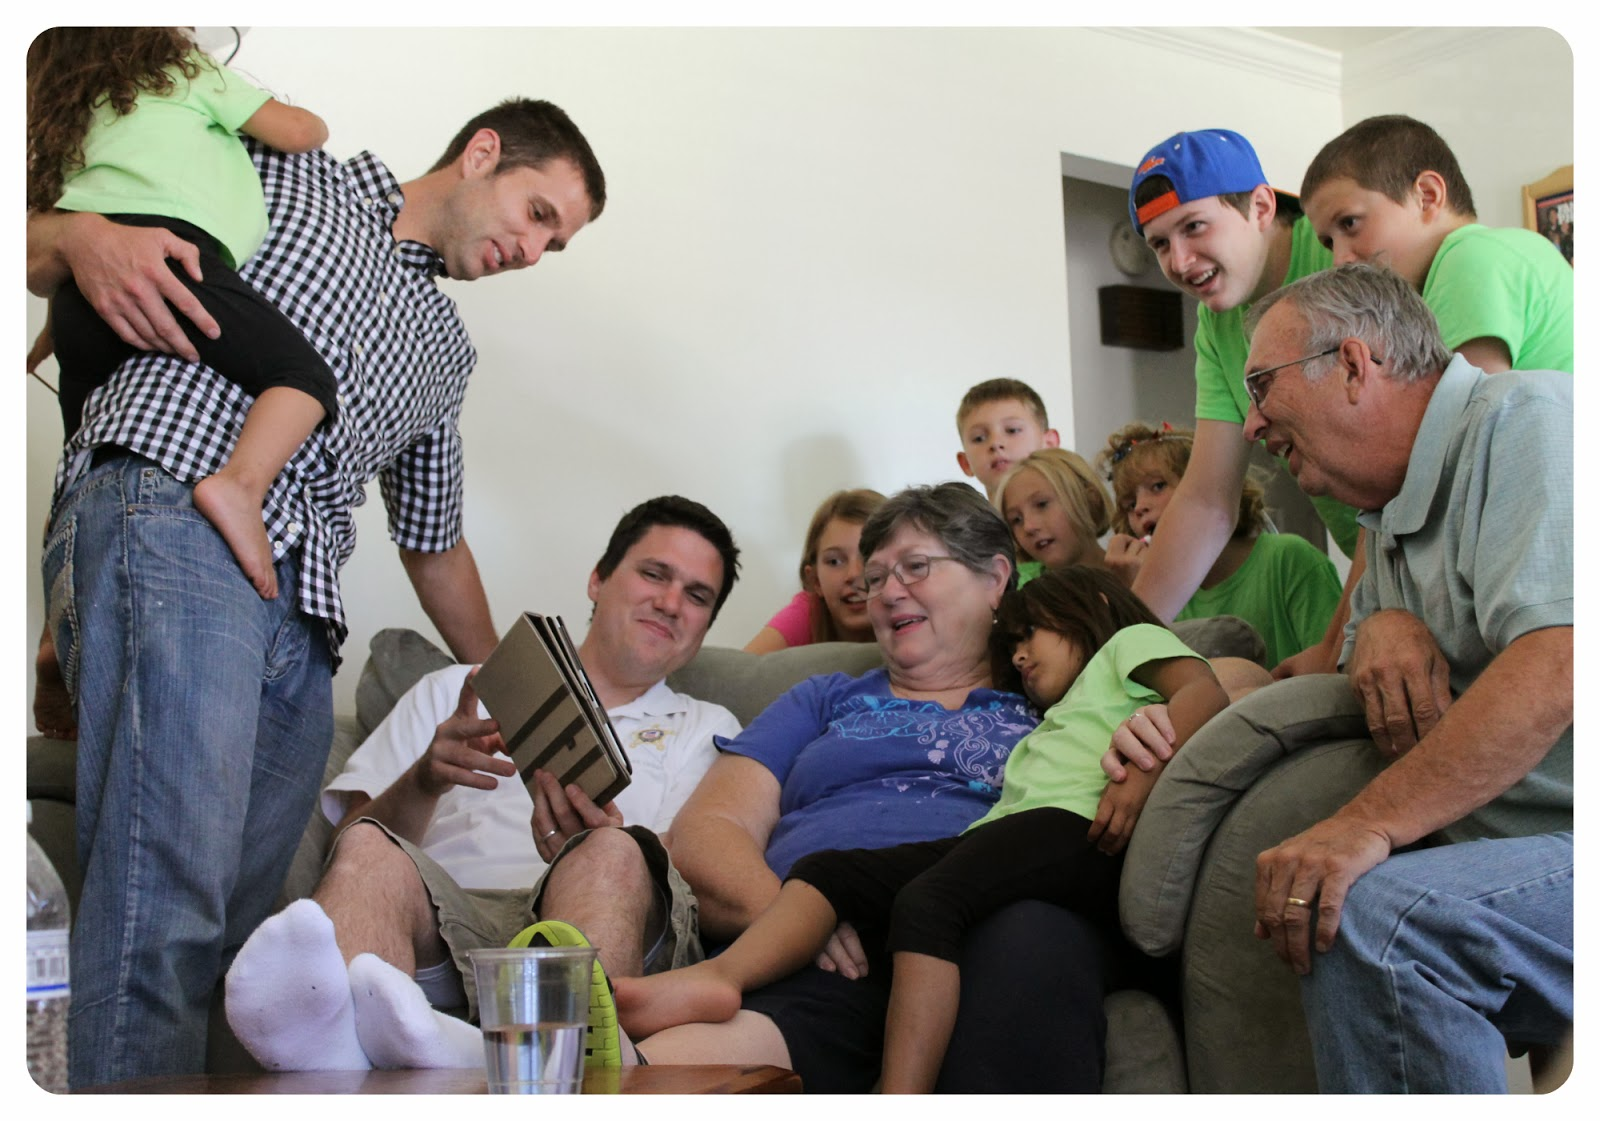 meaningful photos, how to take meaningful photos, family enjoying a funny video together